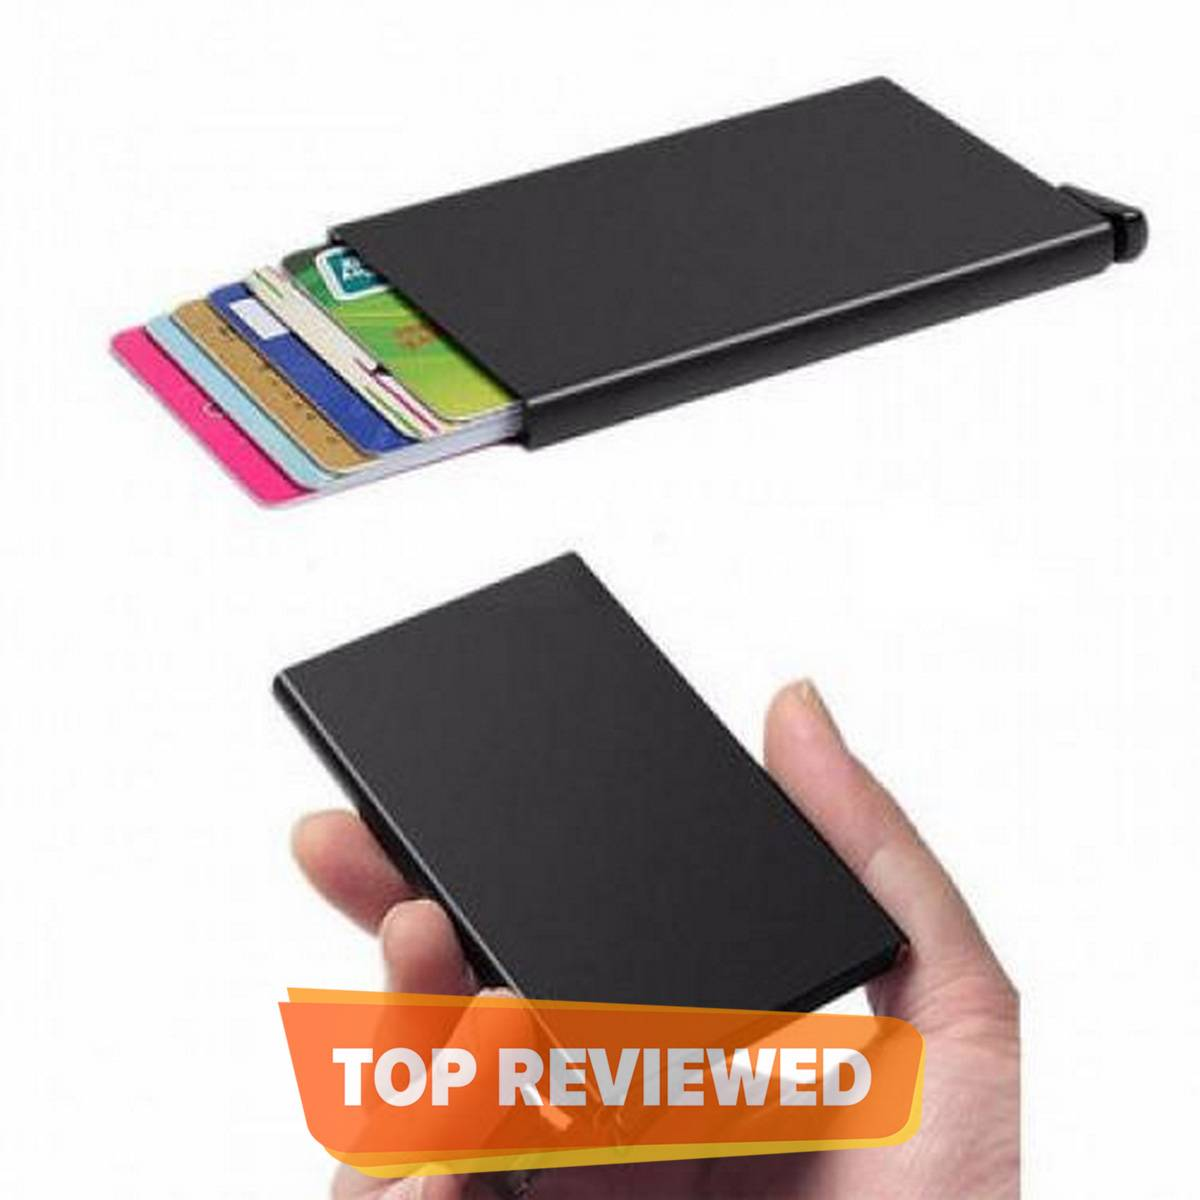 Metal Slim Card Holder Wallet - Smart, Stylish With Good Quality